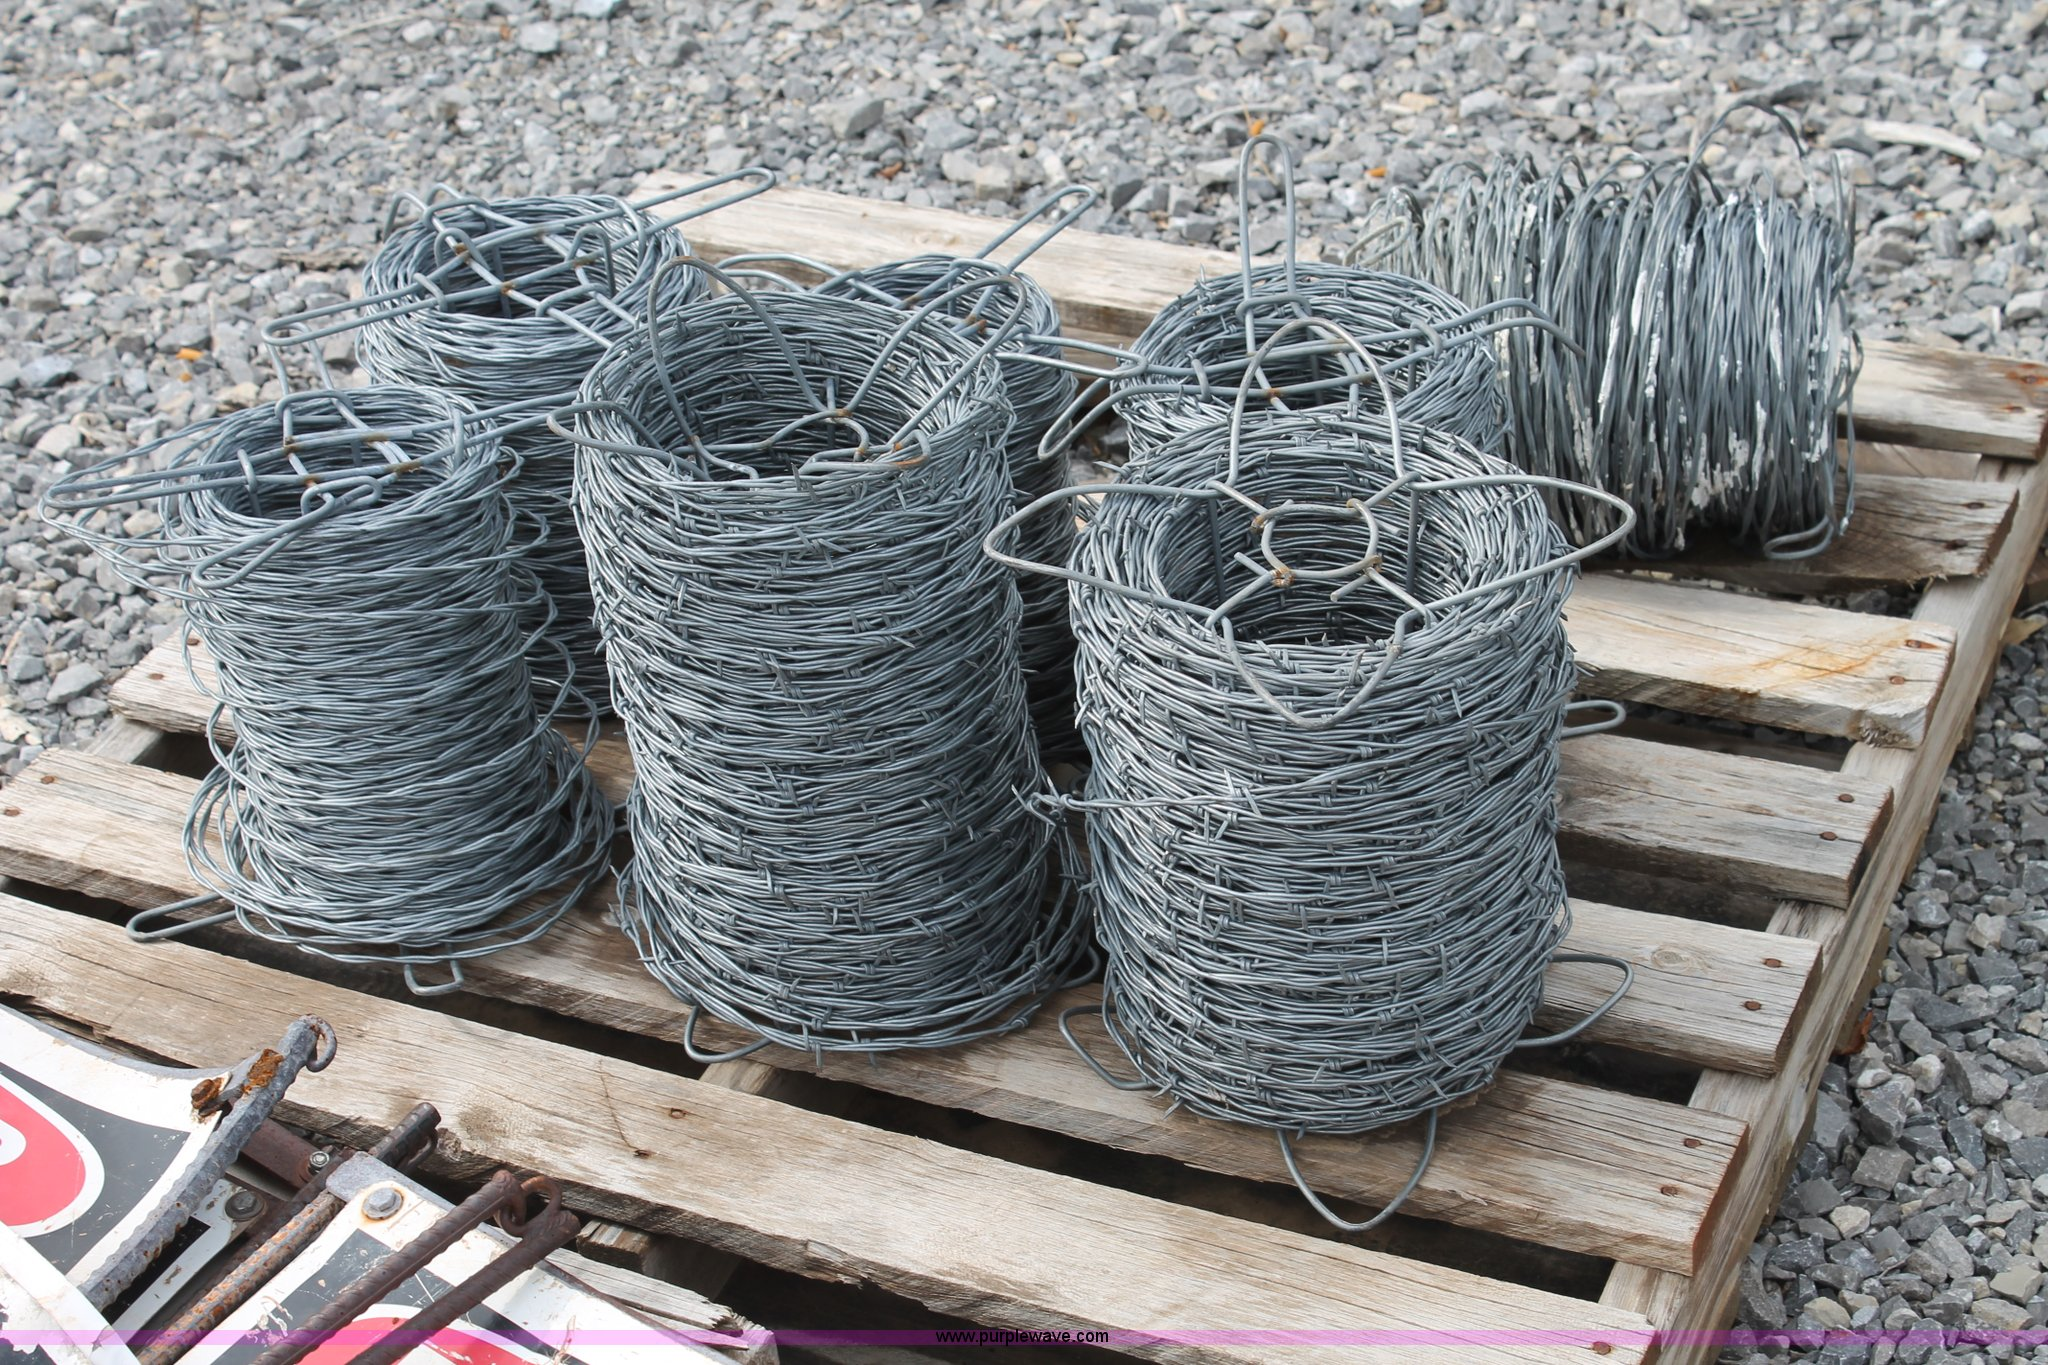 Fencing materials and signs | Item AO9699 | SOLD! December 4...